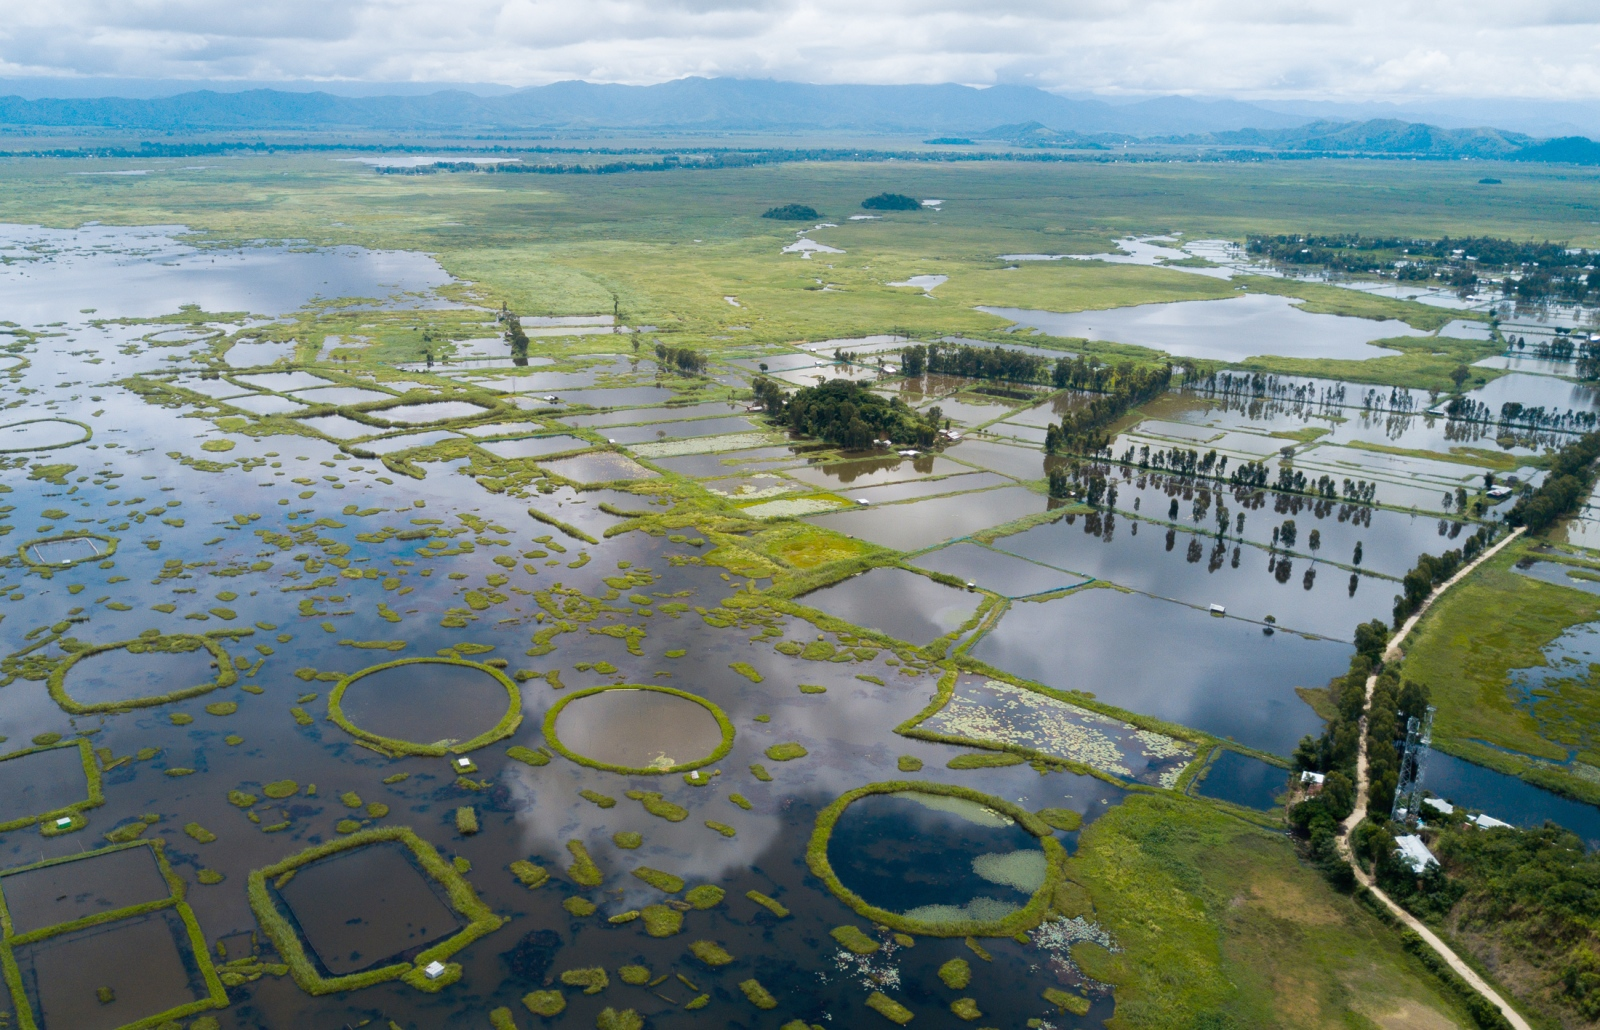 A view of the areas around Loktak Lake that are inundated by floodwaters.